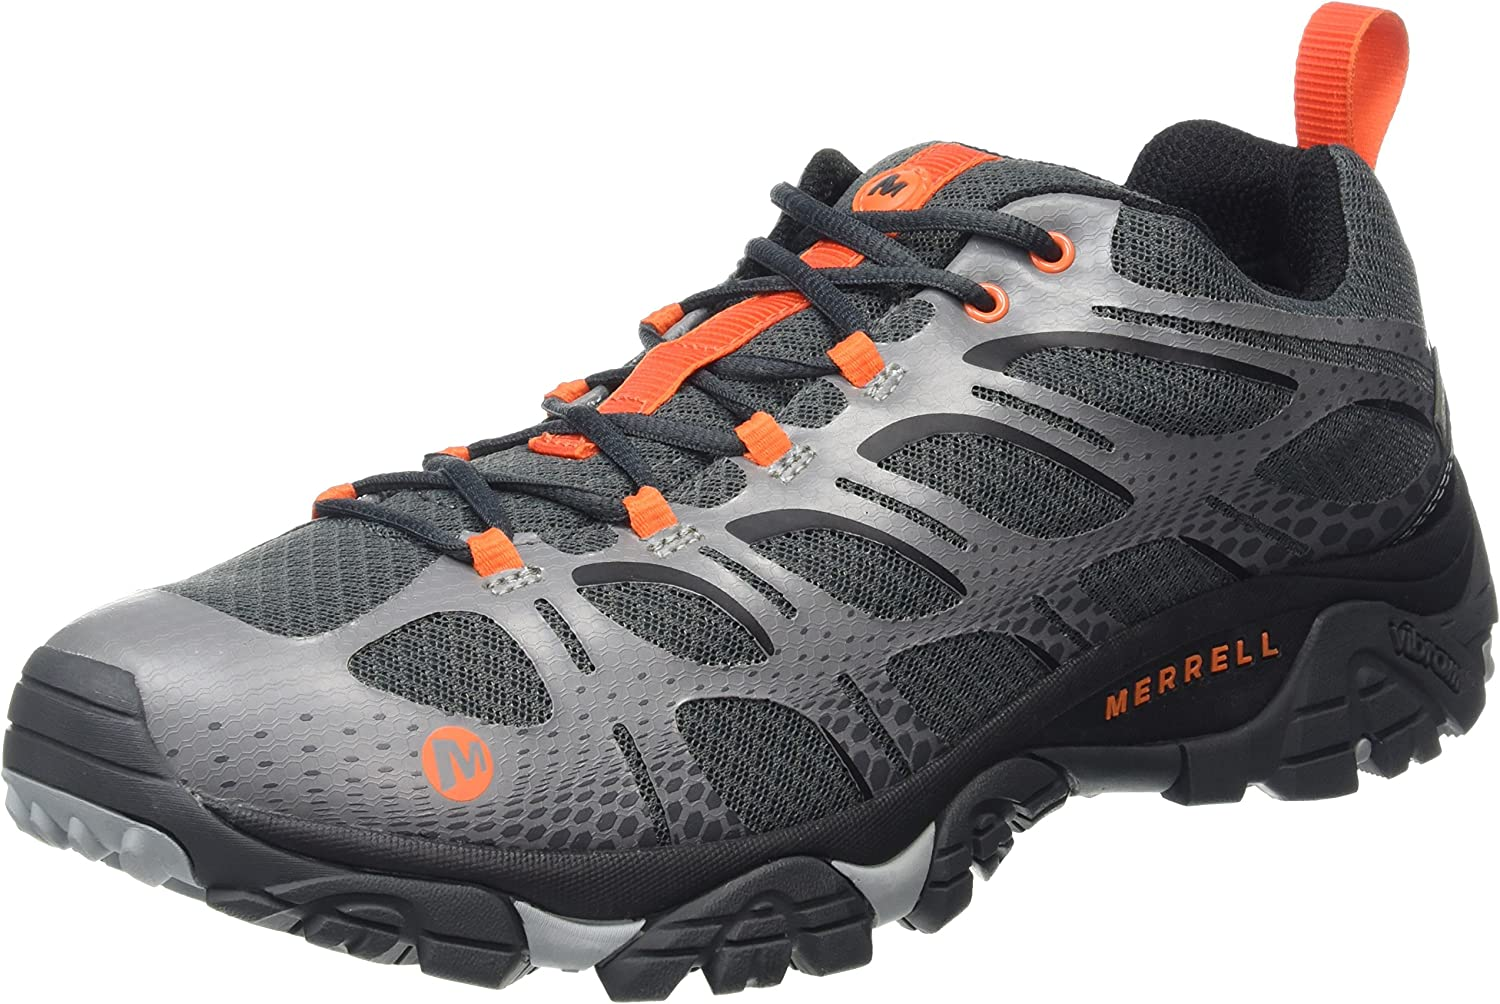 Merrell Men's Moab Edge Waterproof Low Rise Hiking shoes